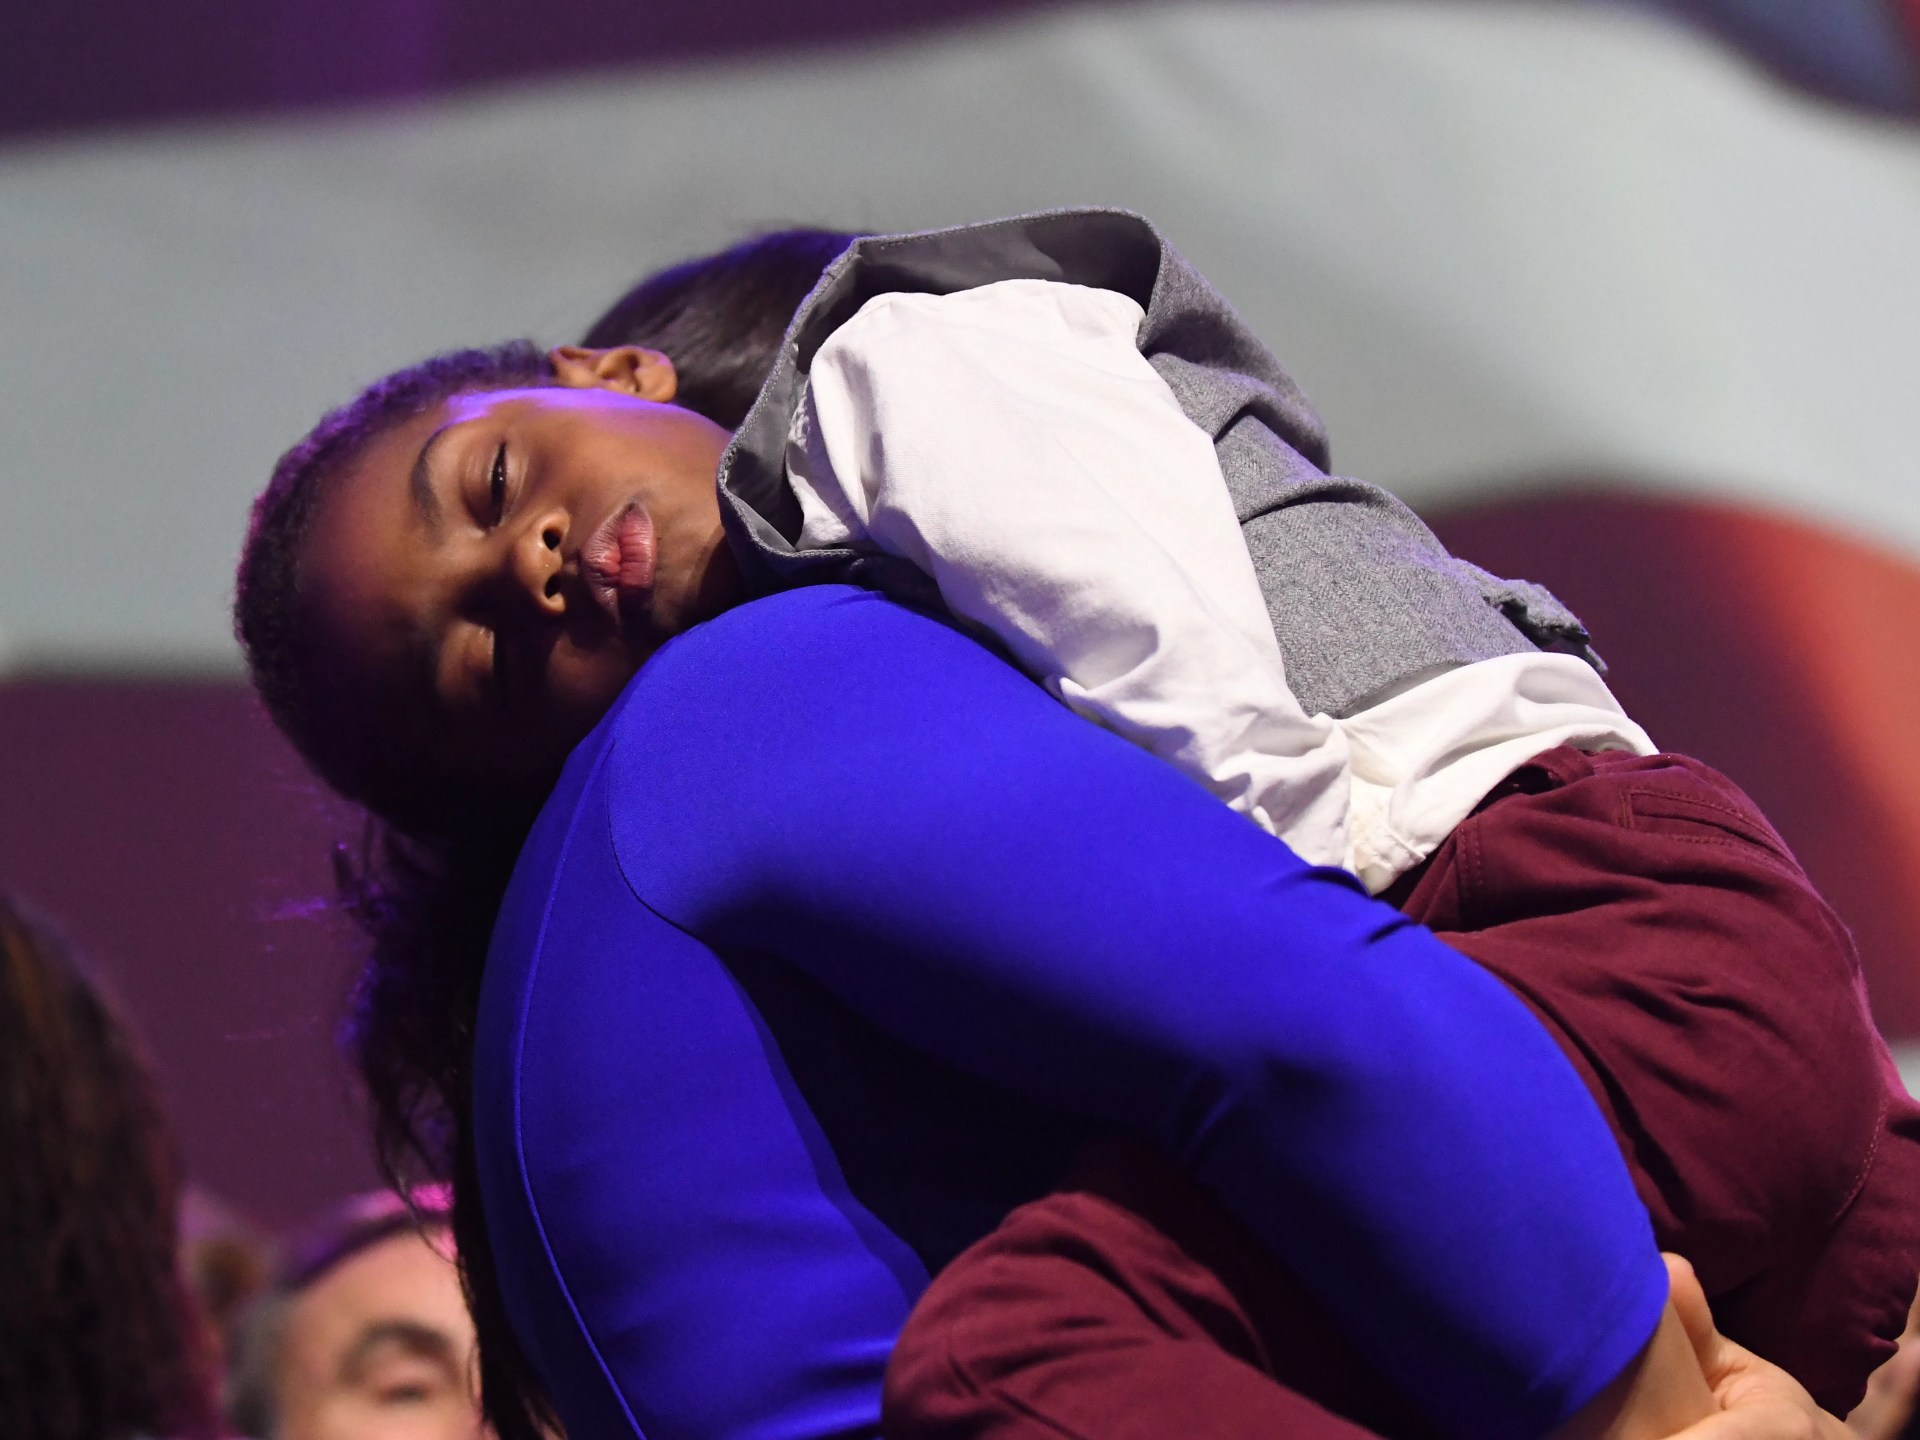 Lt. Governor-elect Garlin Gilchrist II's son falls asleep on his wife's shoulder at the  Democratic Party's election night event.